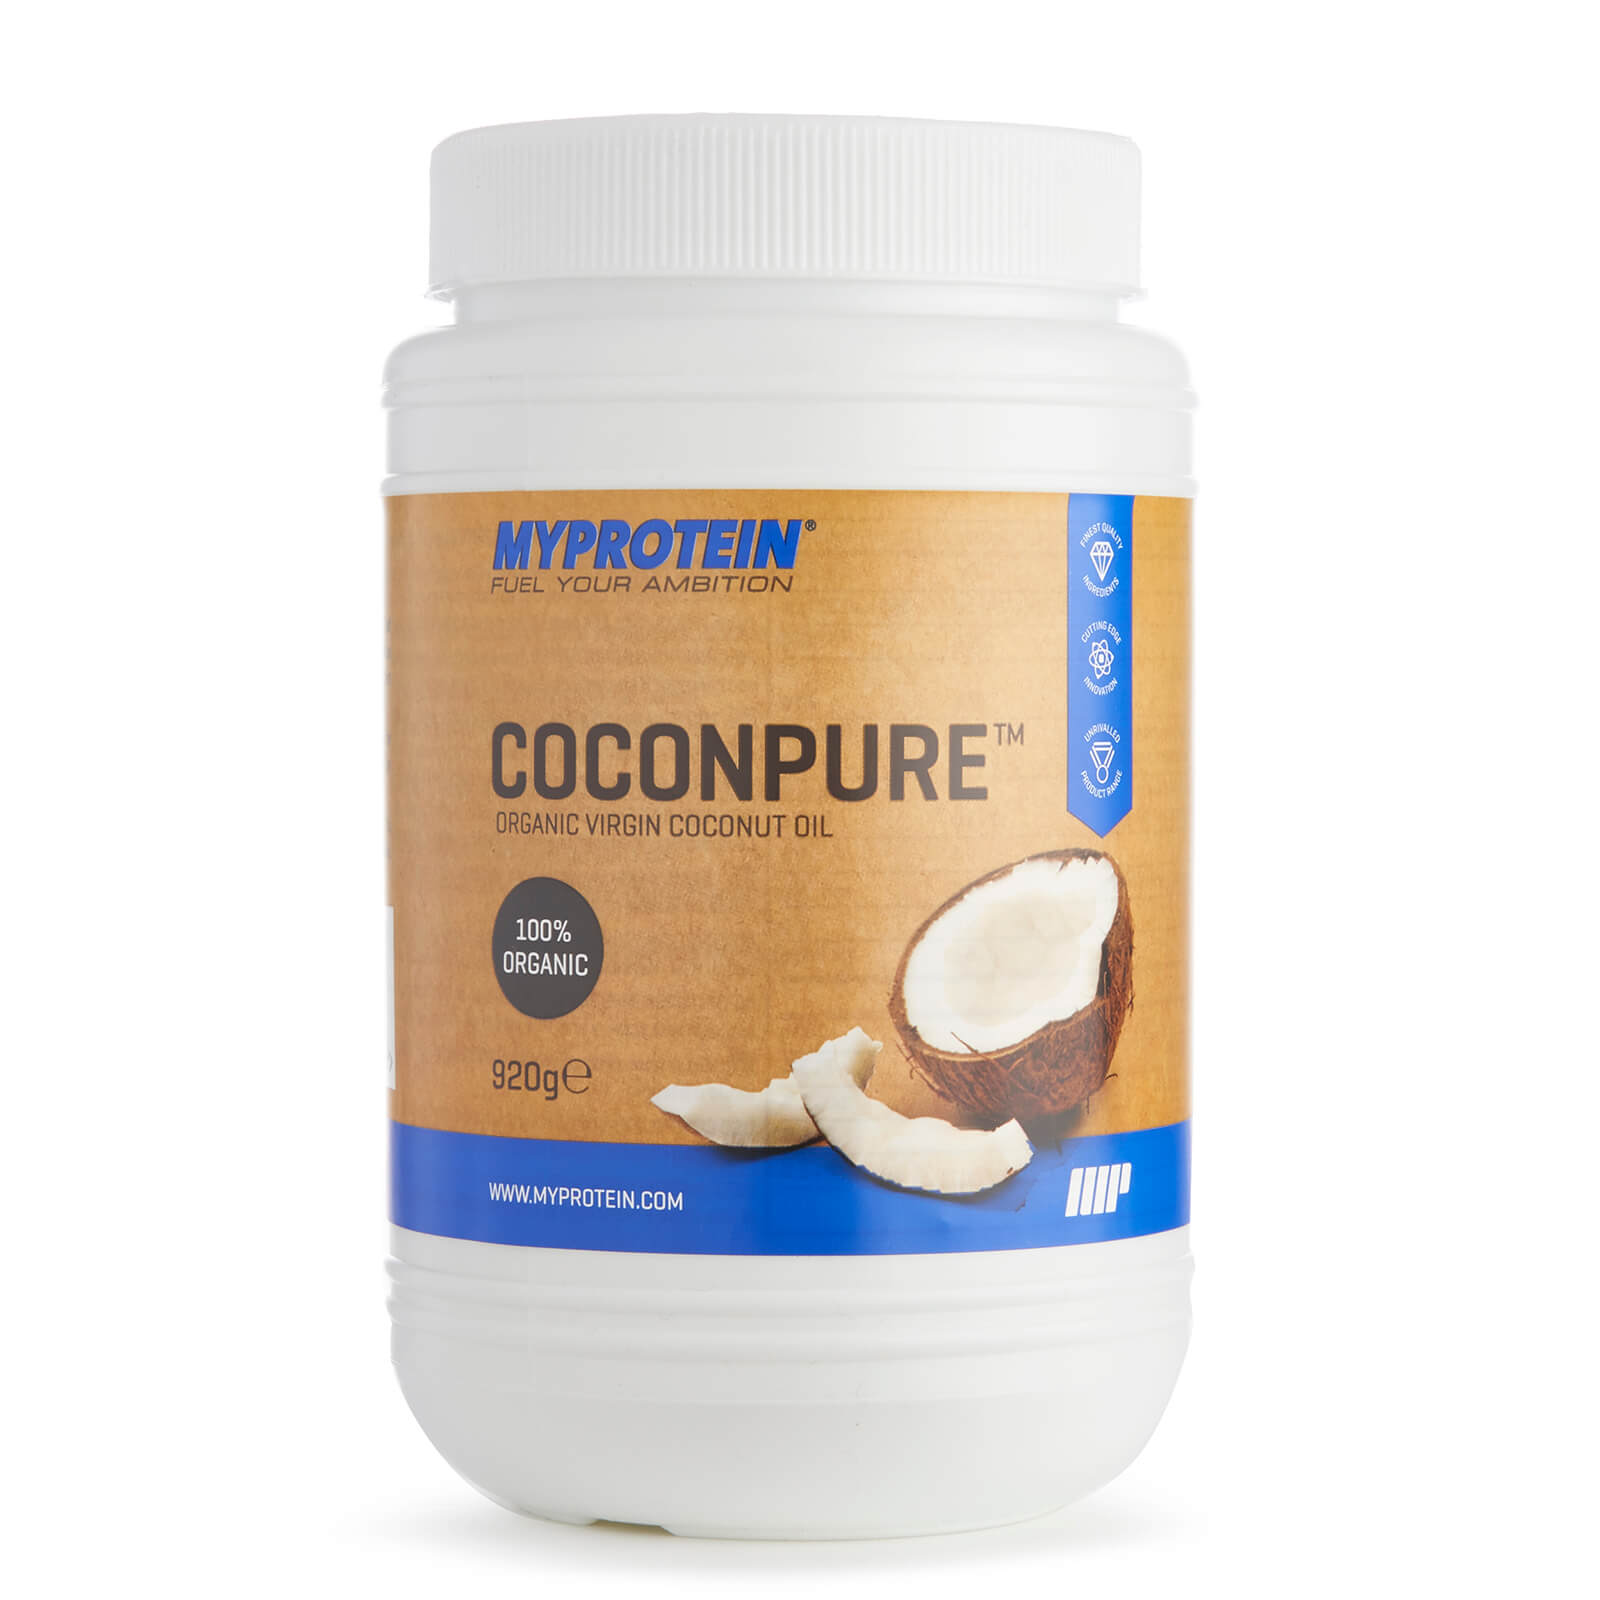 Buy Organic Virgin Coconut Oil Coconpure